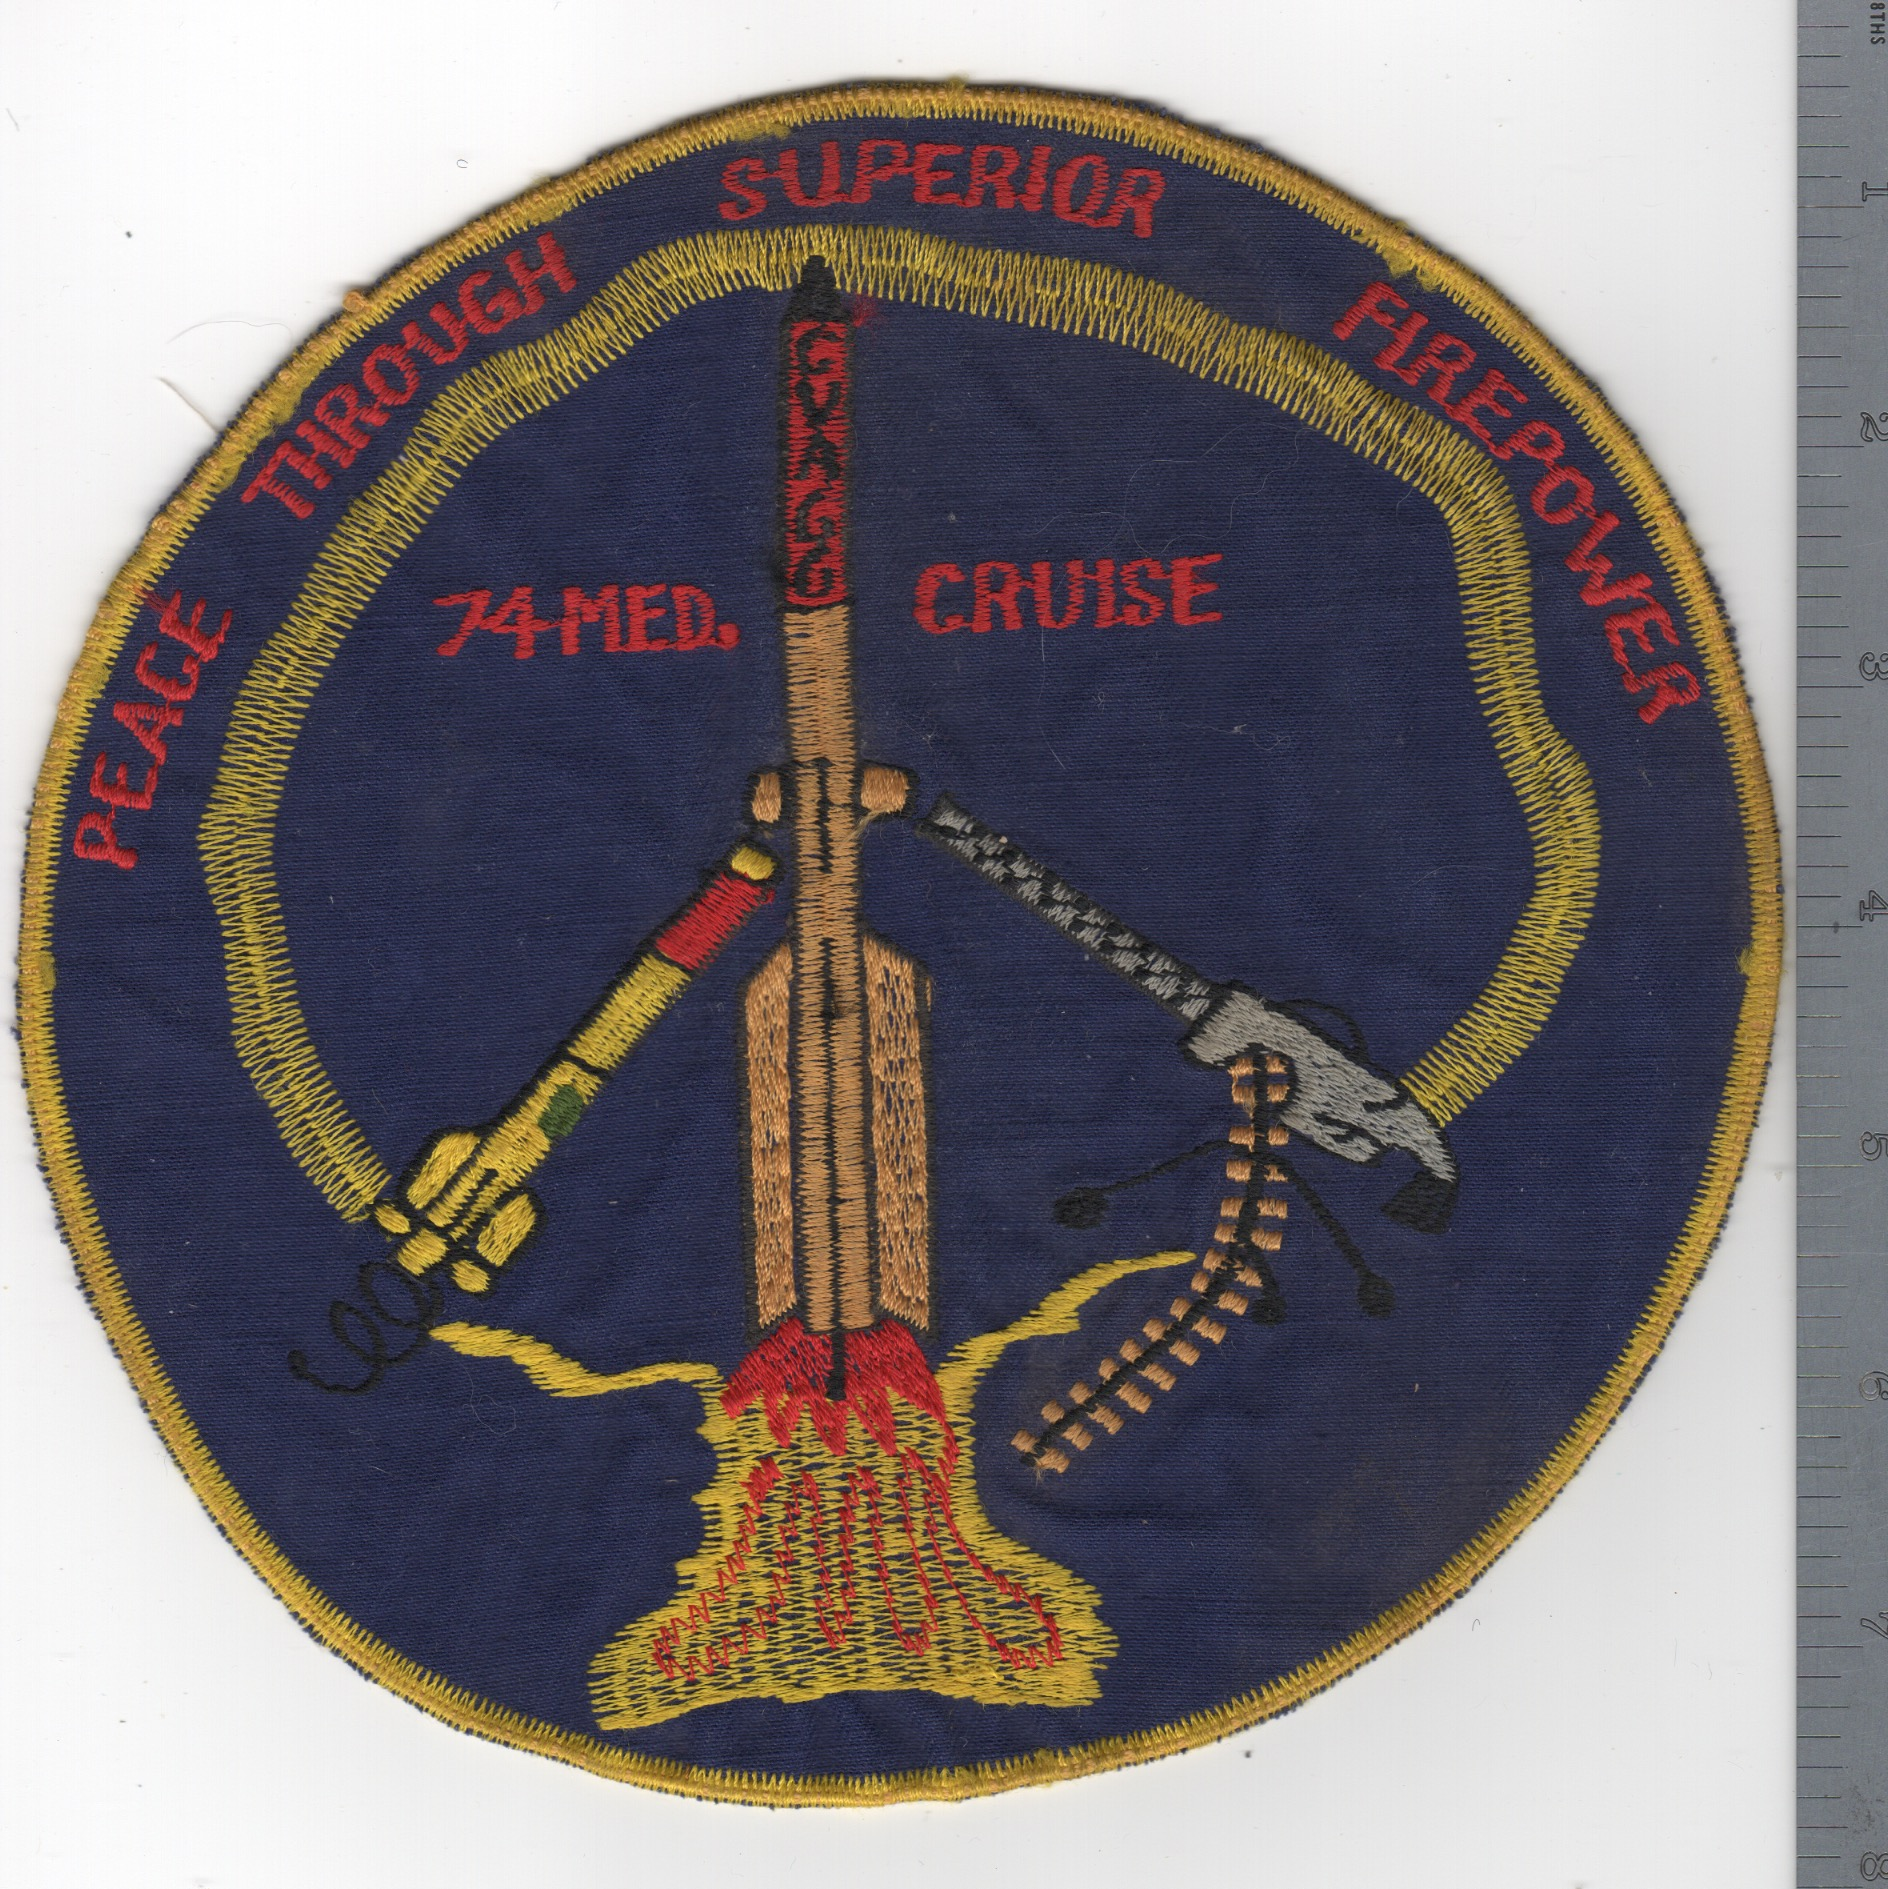 444) CVA-66 1974 MED Cruise Backpatch (OLD)